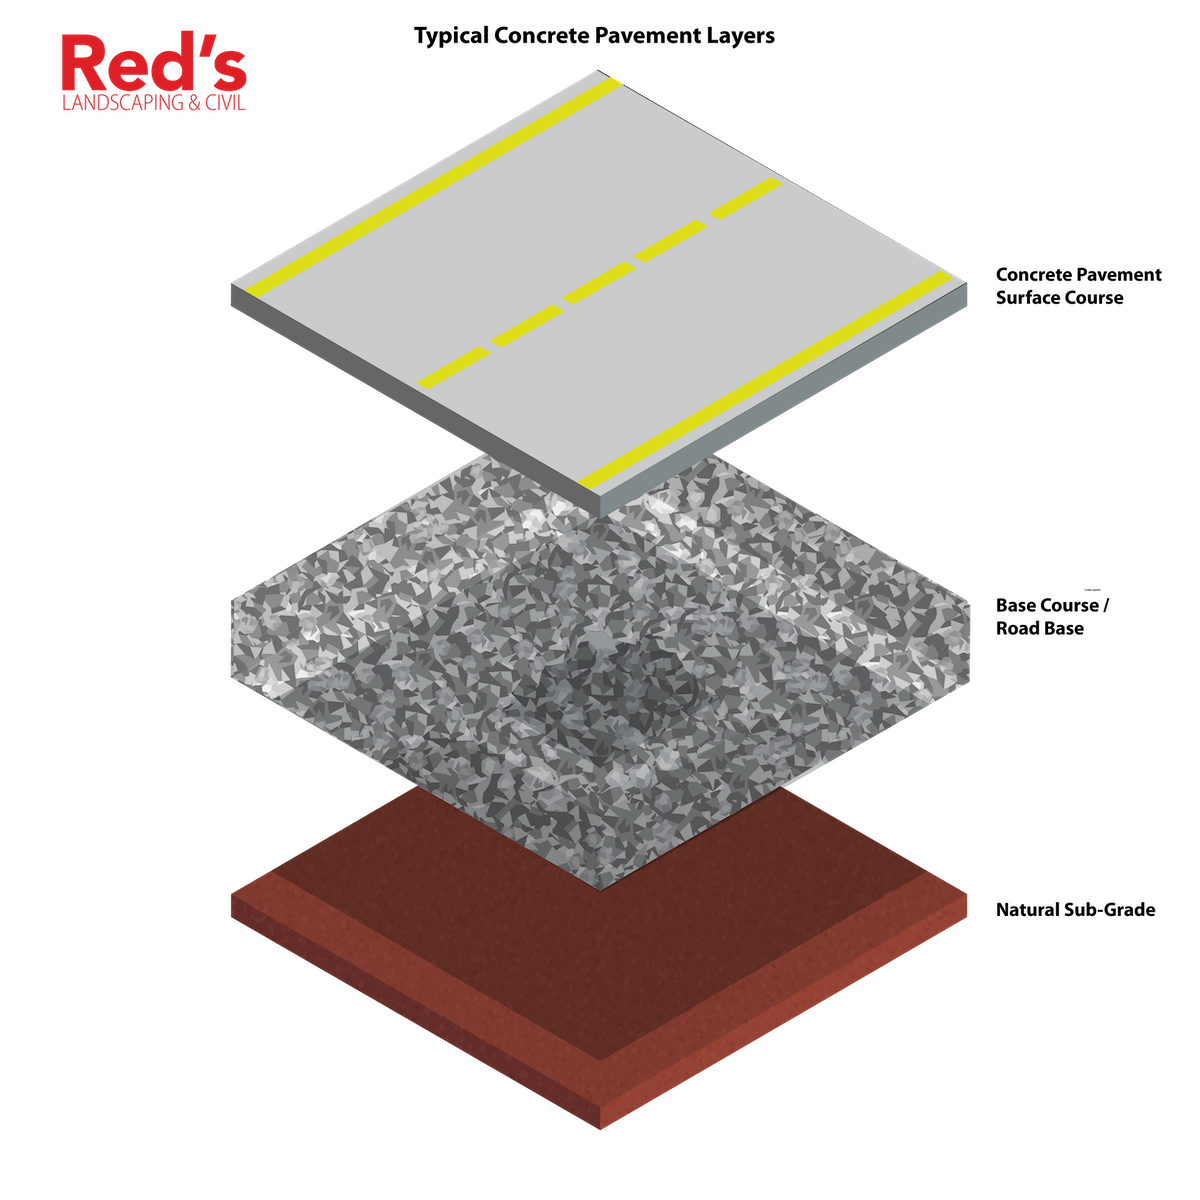 Typical concrete pavement layers.